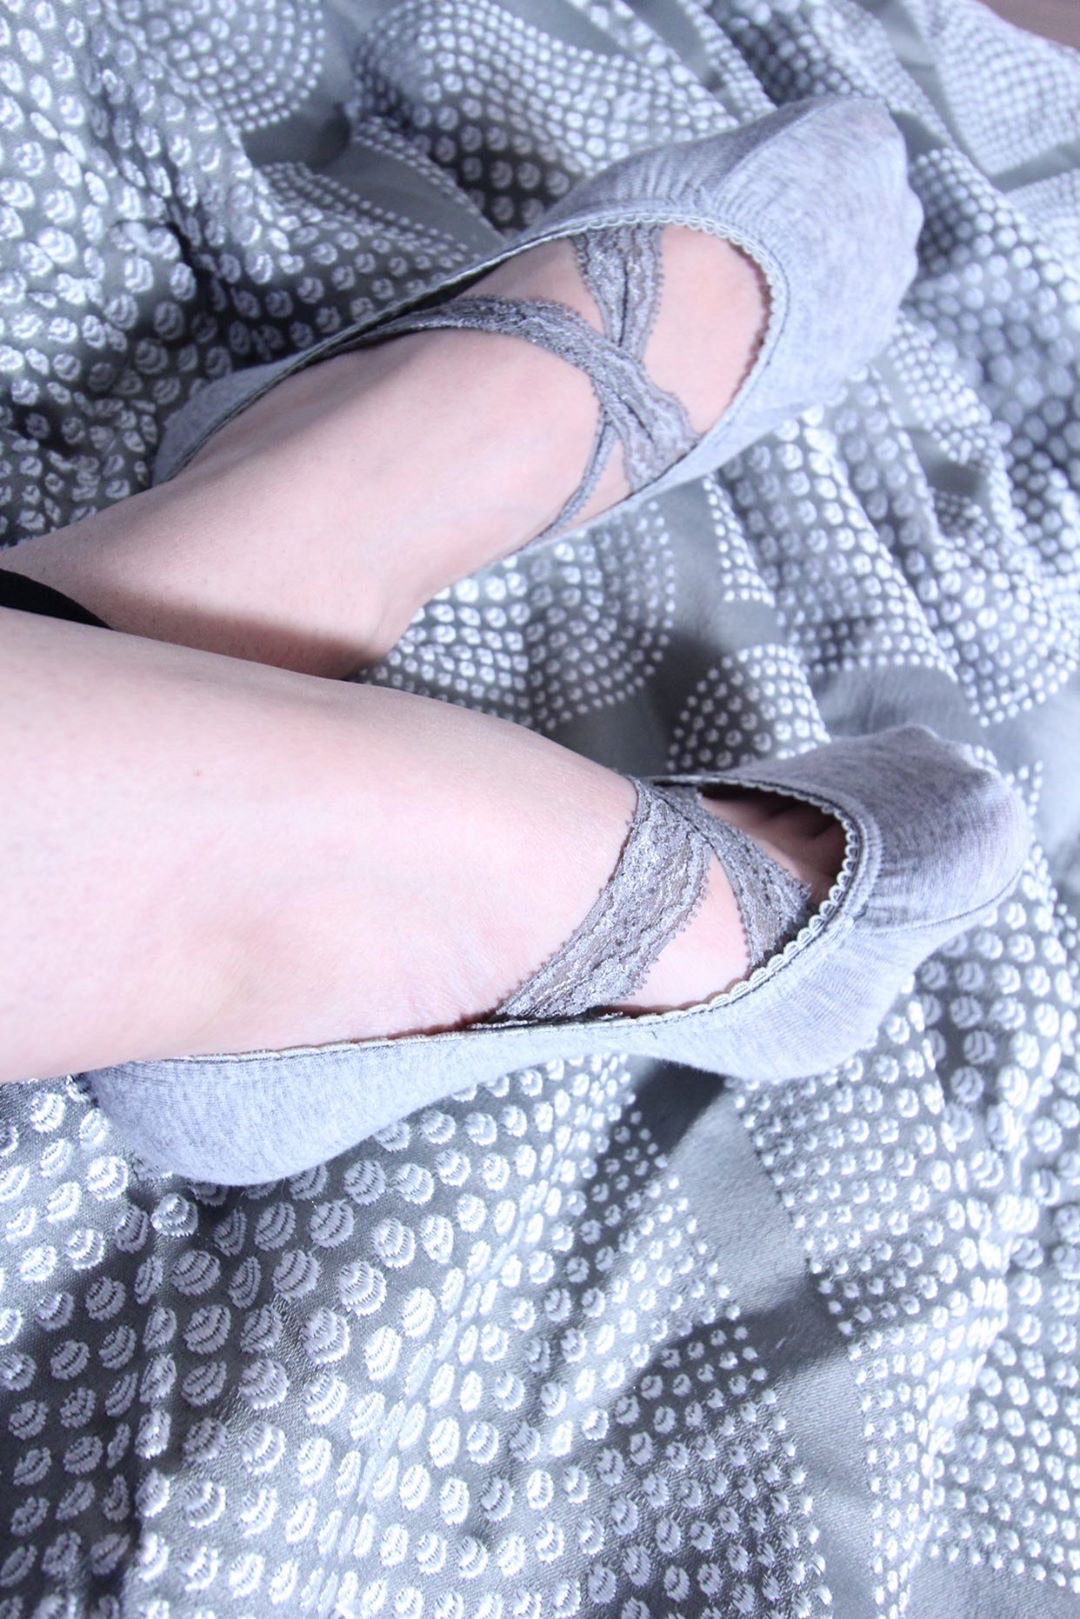 Grey Ankle Socks with crossed lace - Global Trendz Fashion®